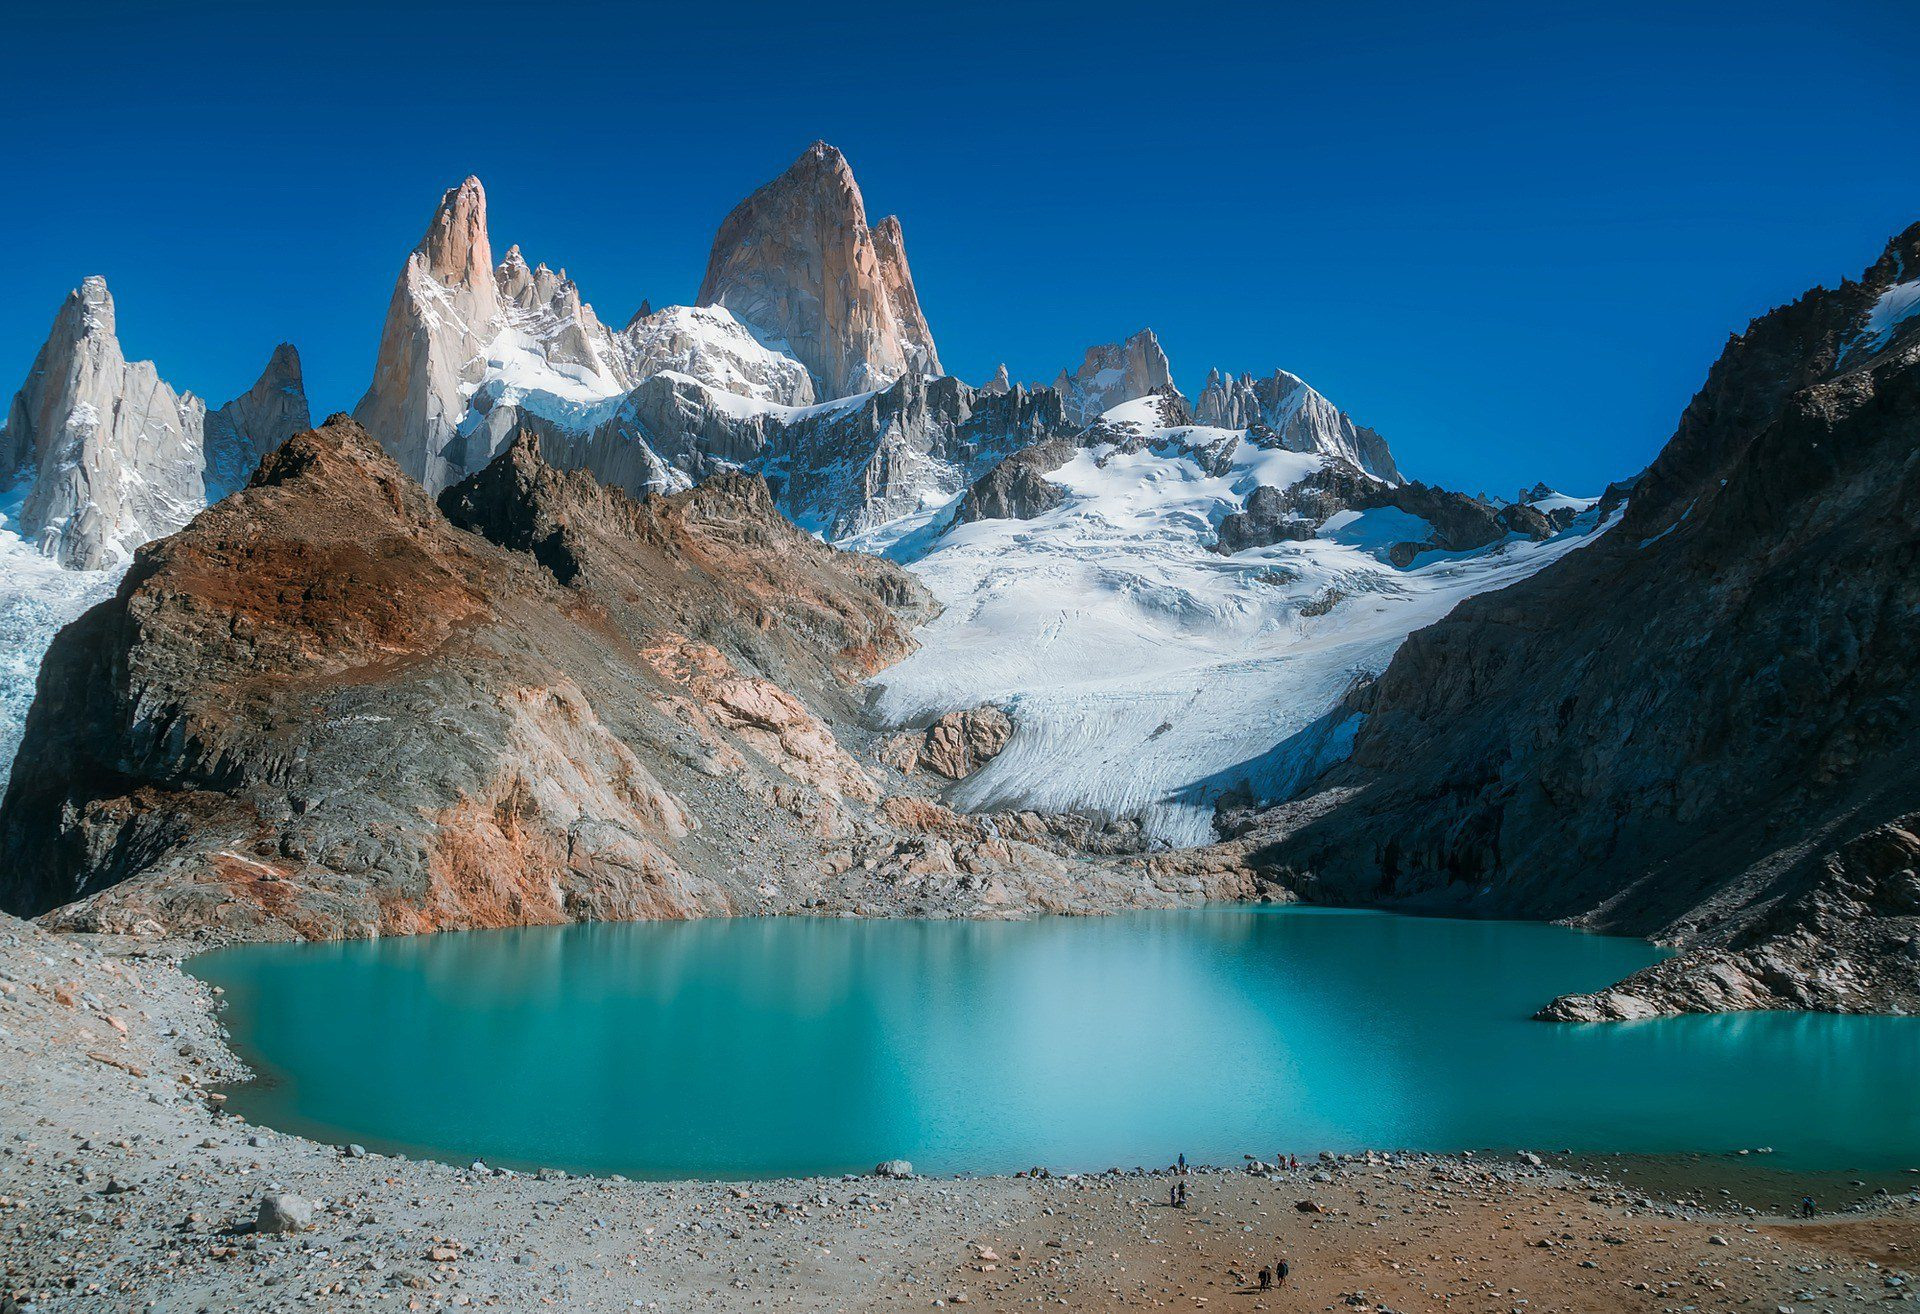 Planning a trip to Patagonia